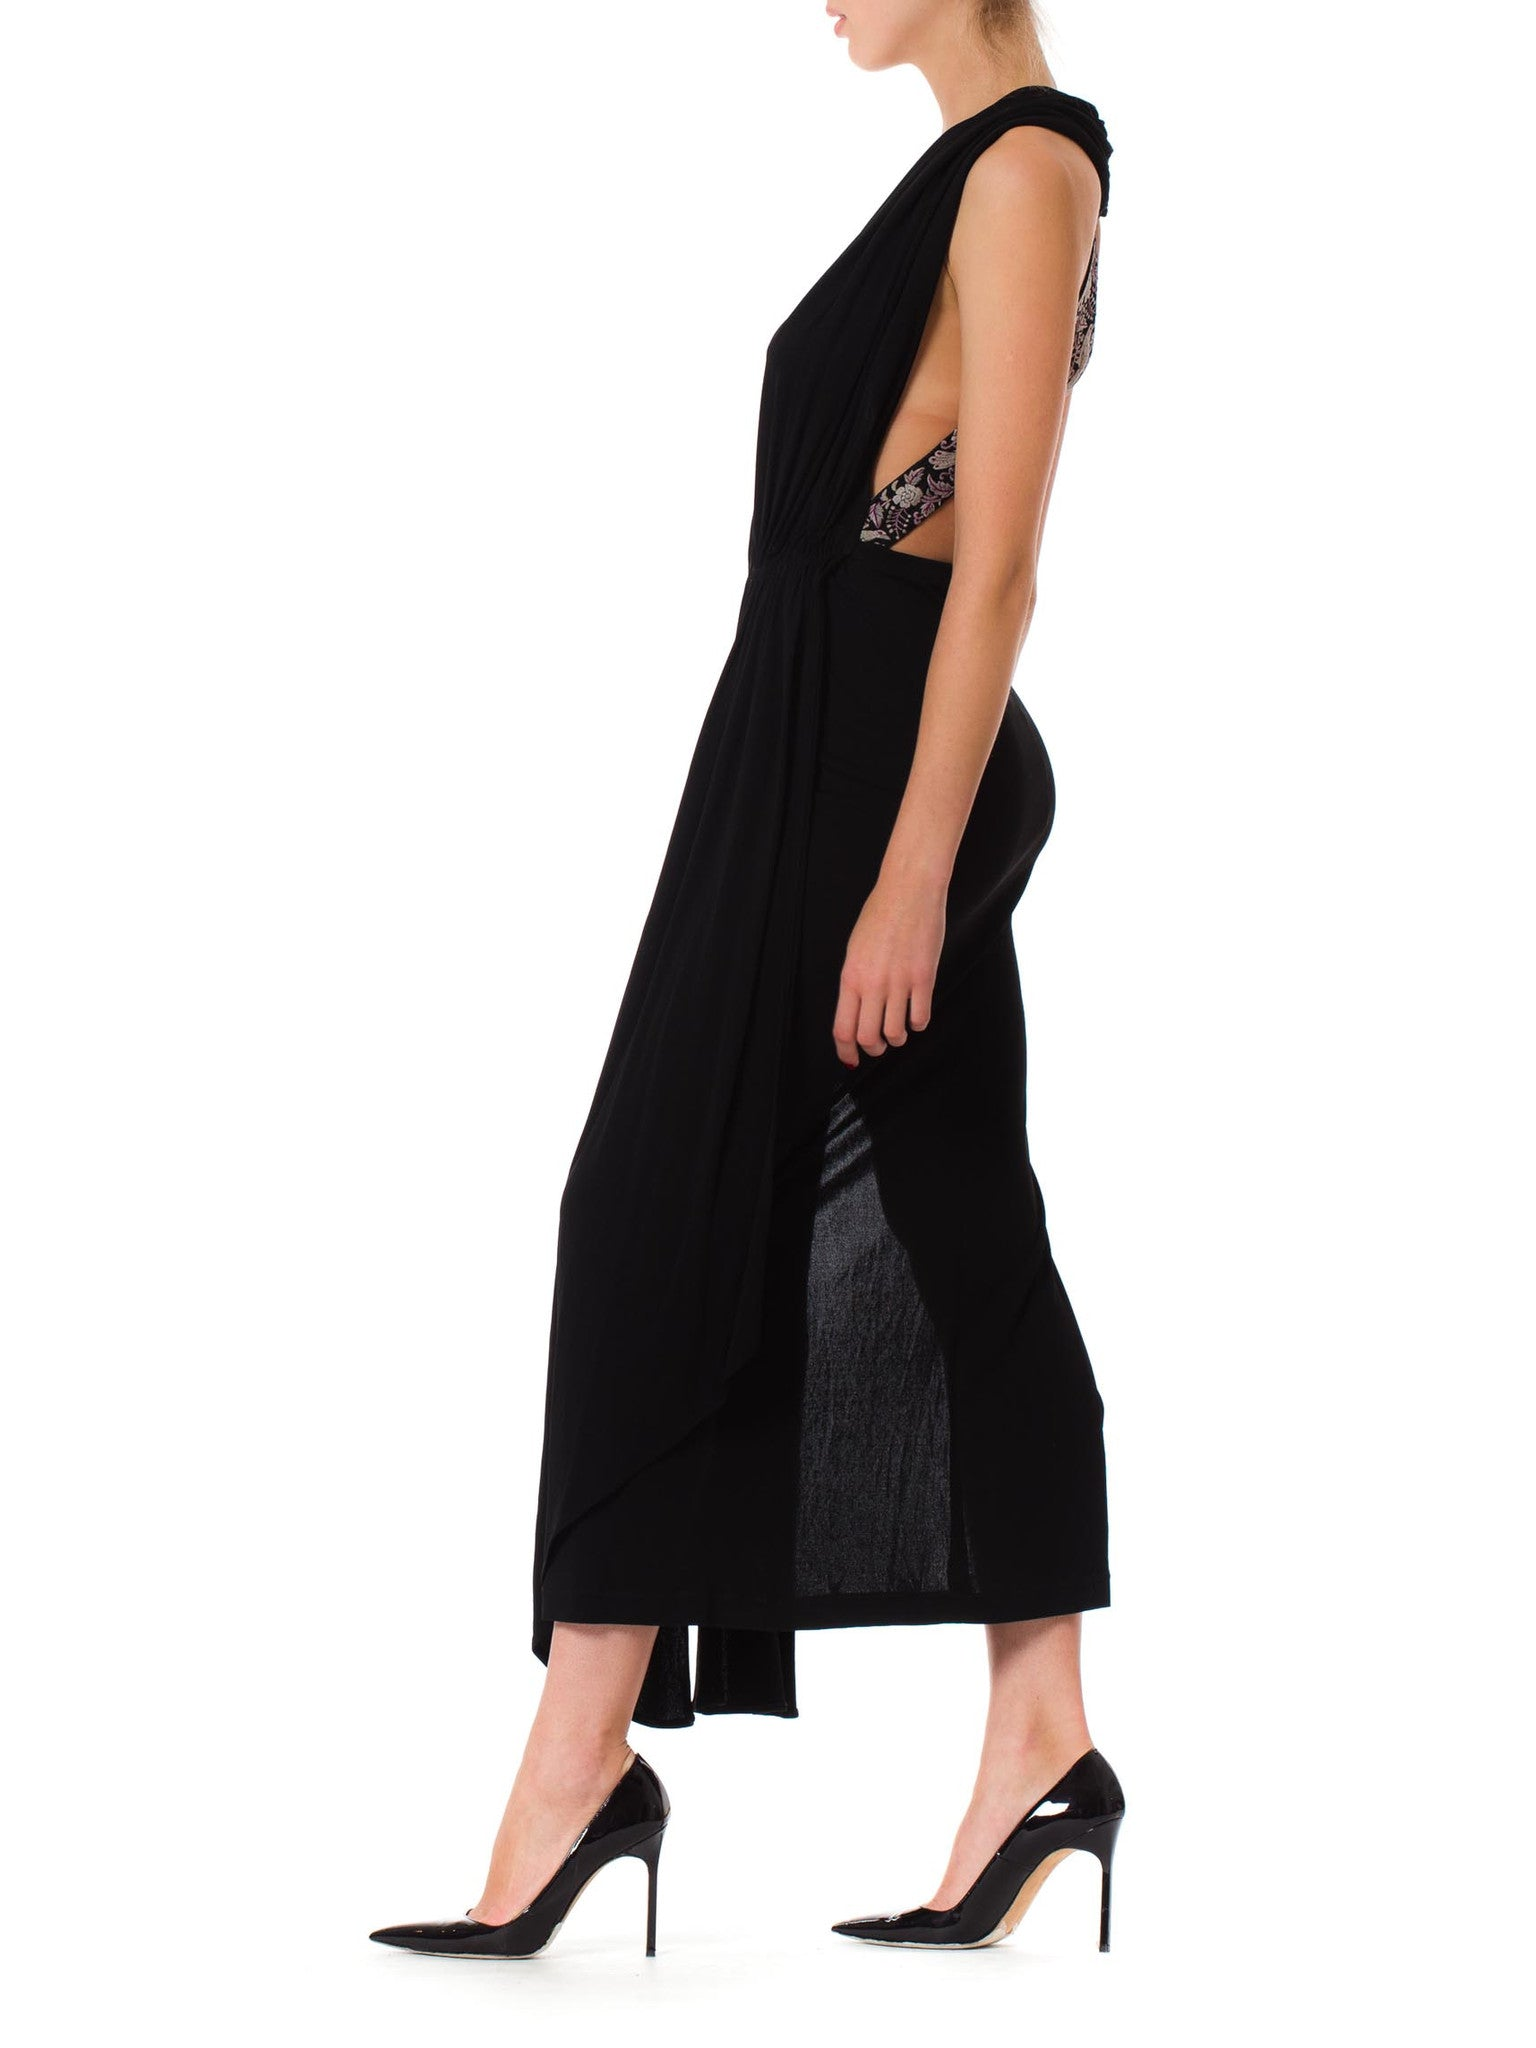 1970S Morphew Collection Silk Glam Black Deep Cut (Plunging Neckline)  Long Dress With Embroidered Asian Straps